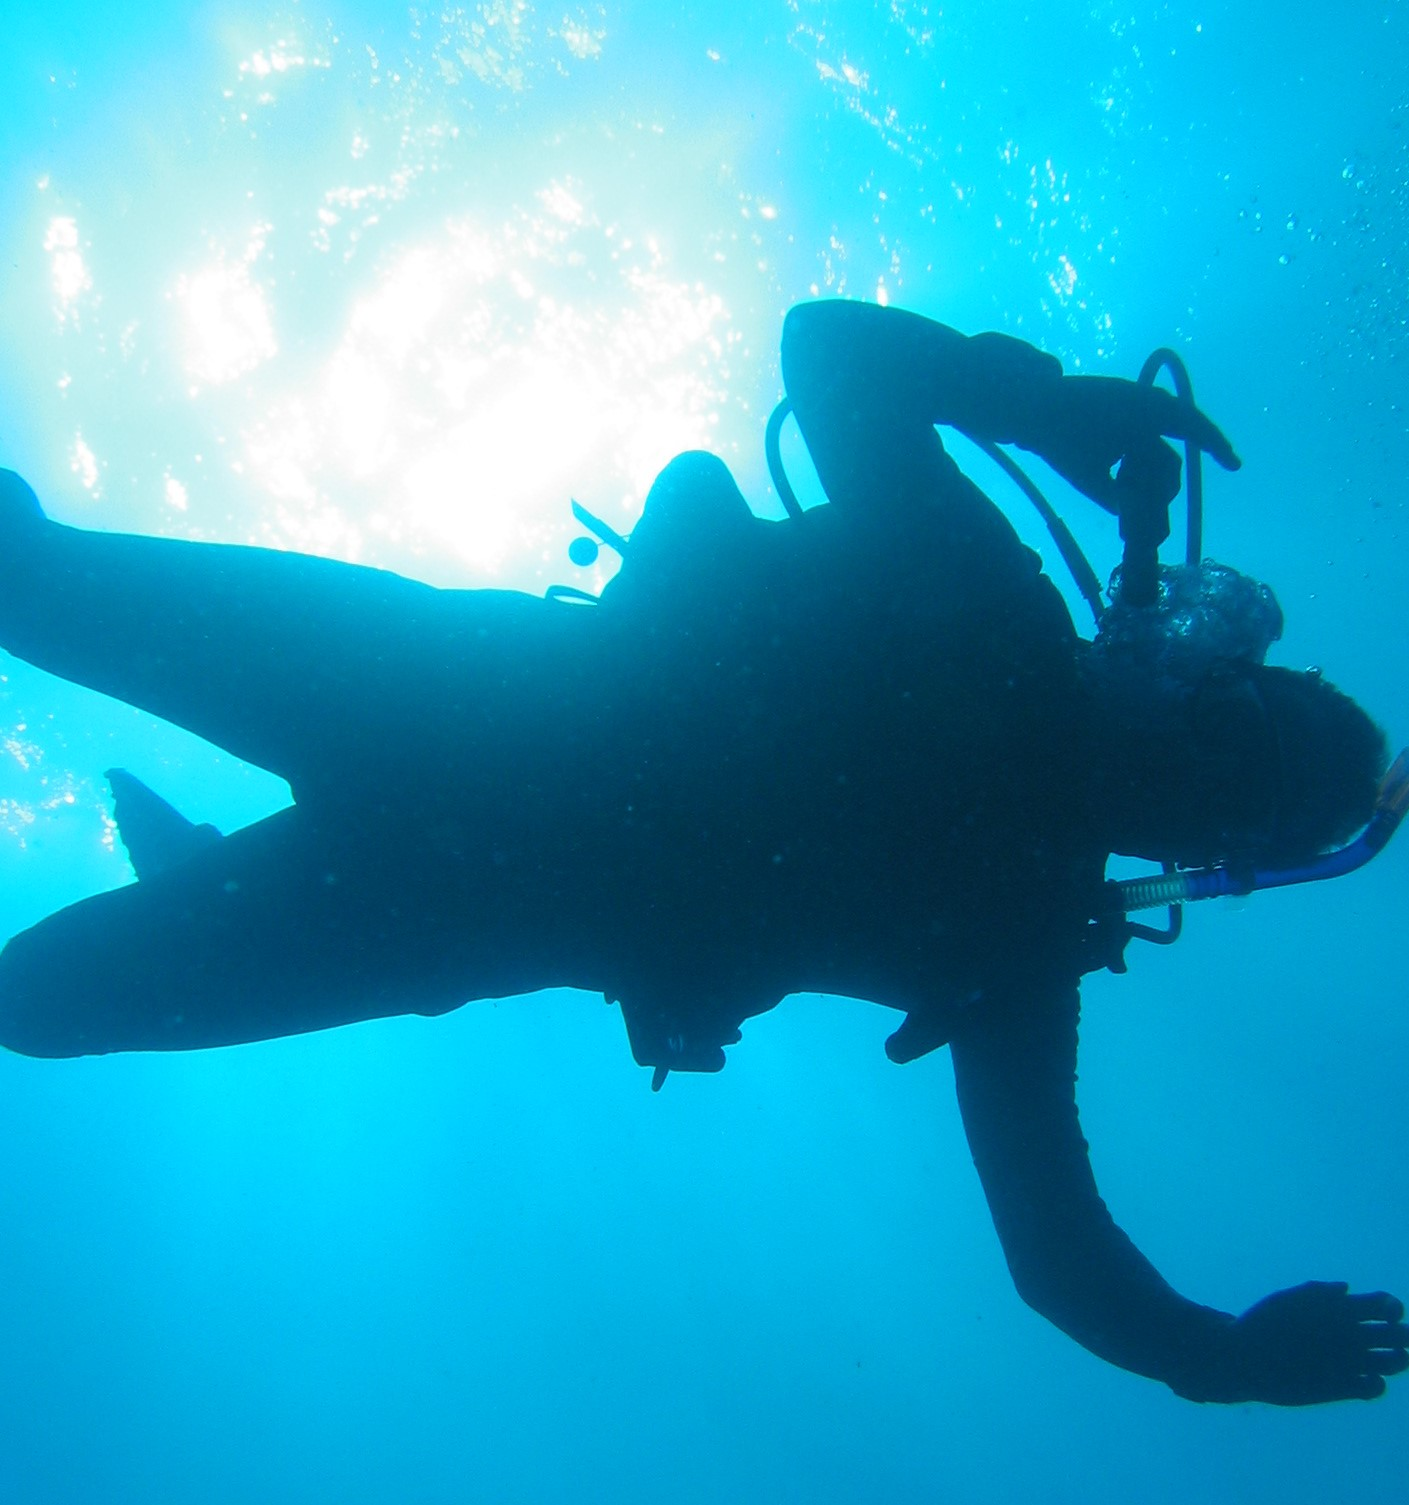 PADI deep diver course, scuba dive deeper with the PADI deep diver course